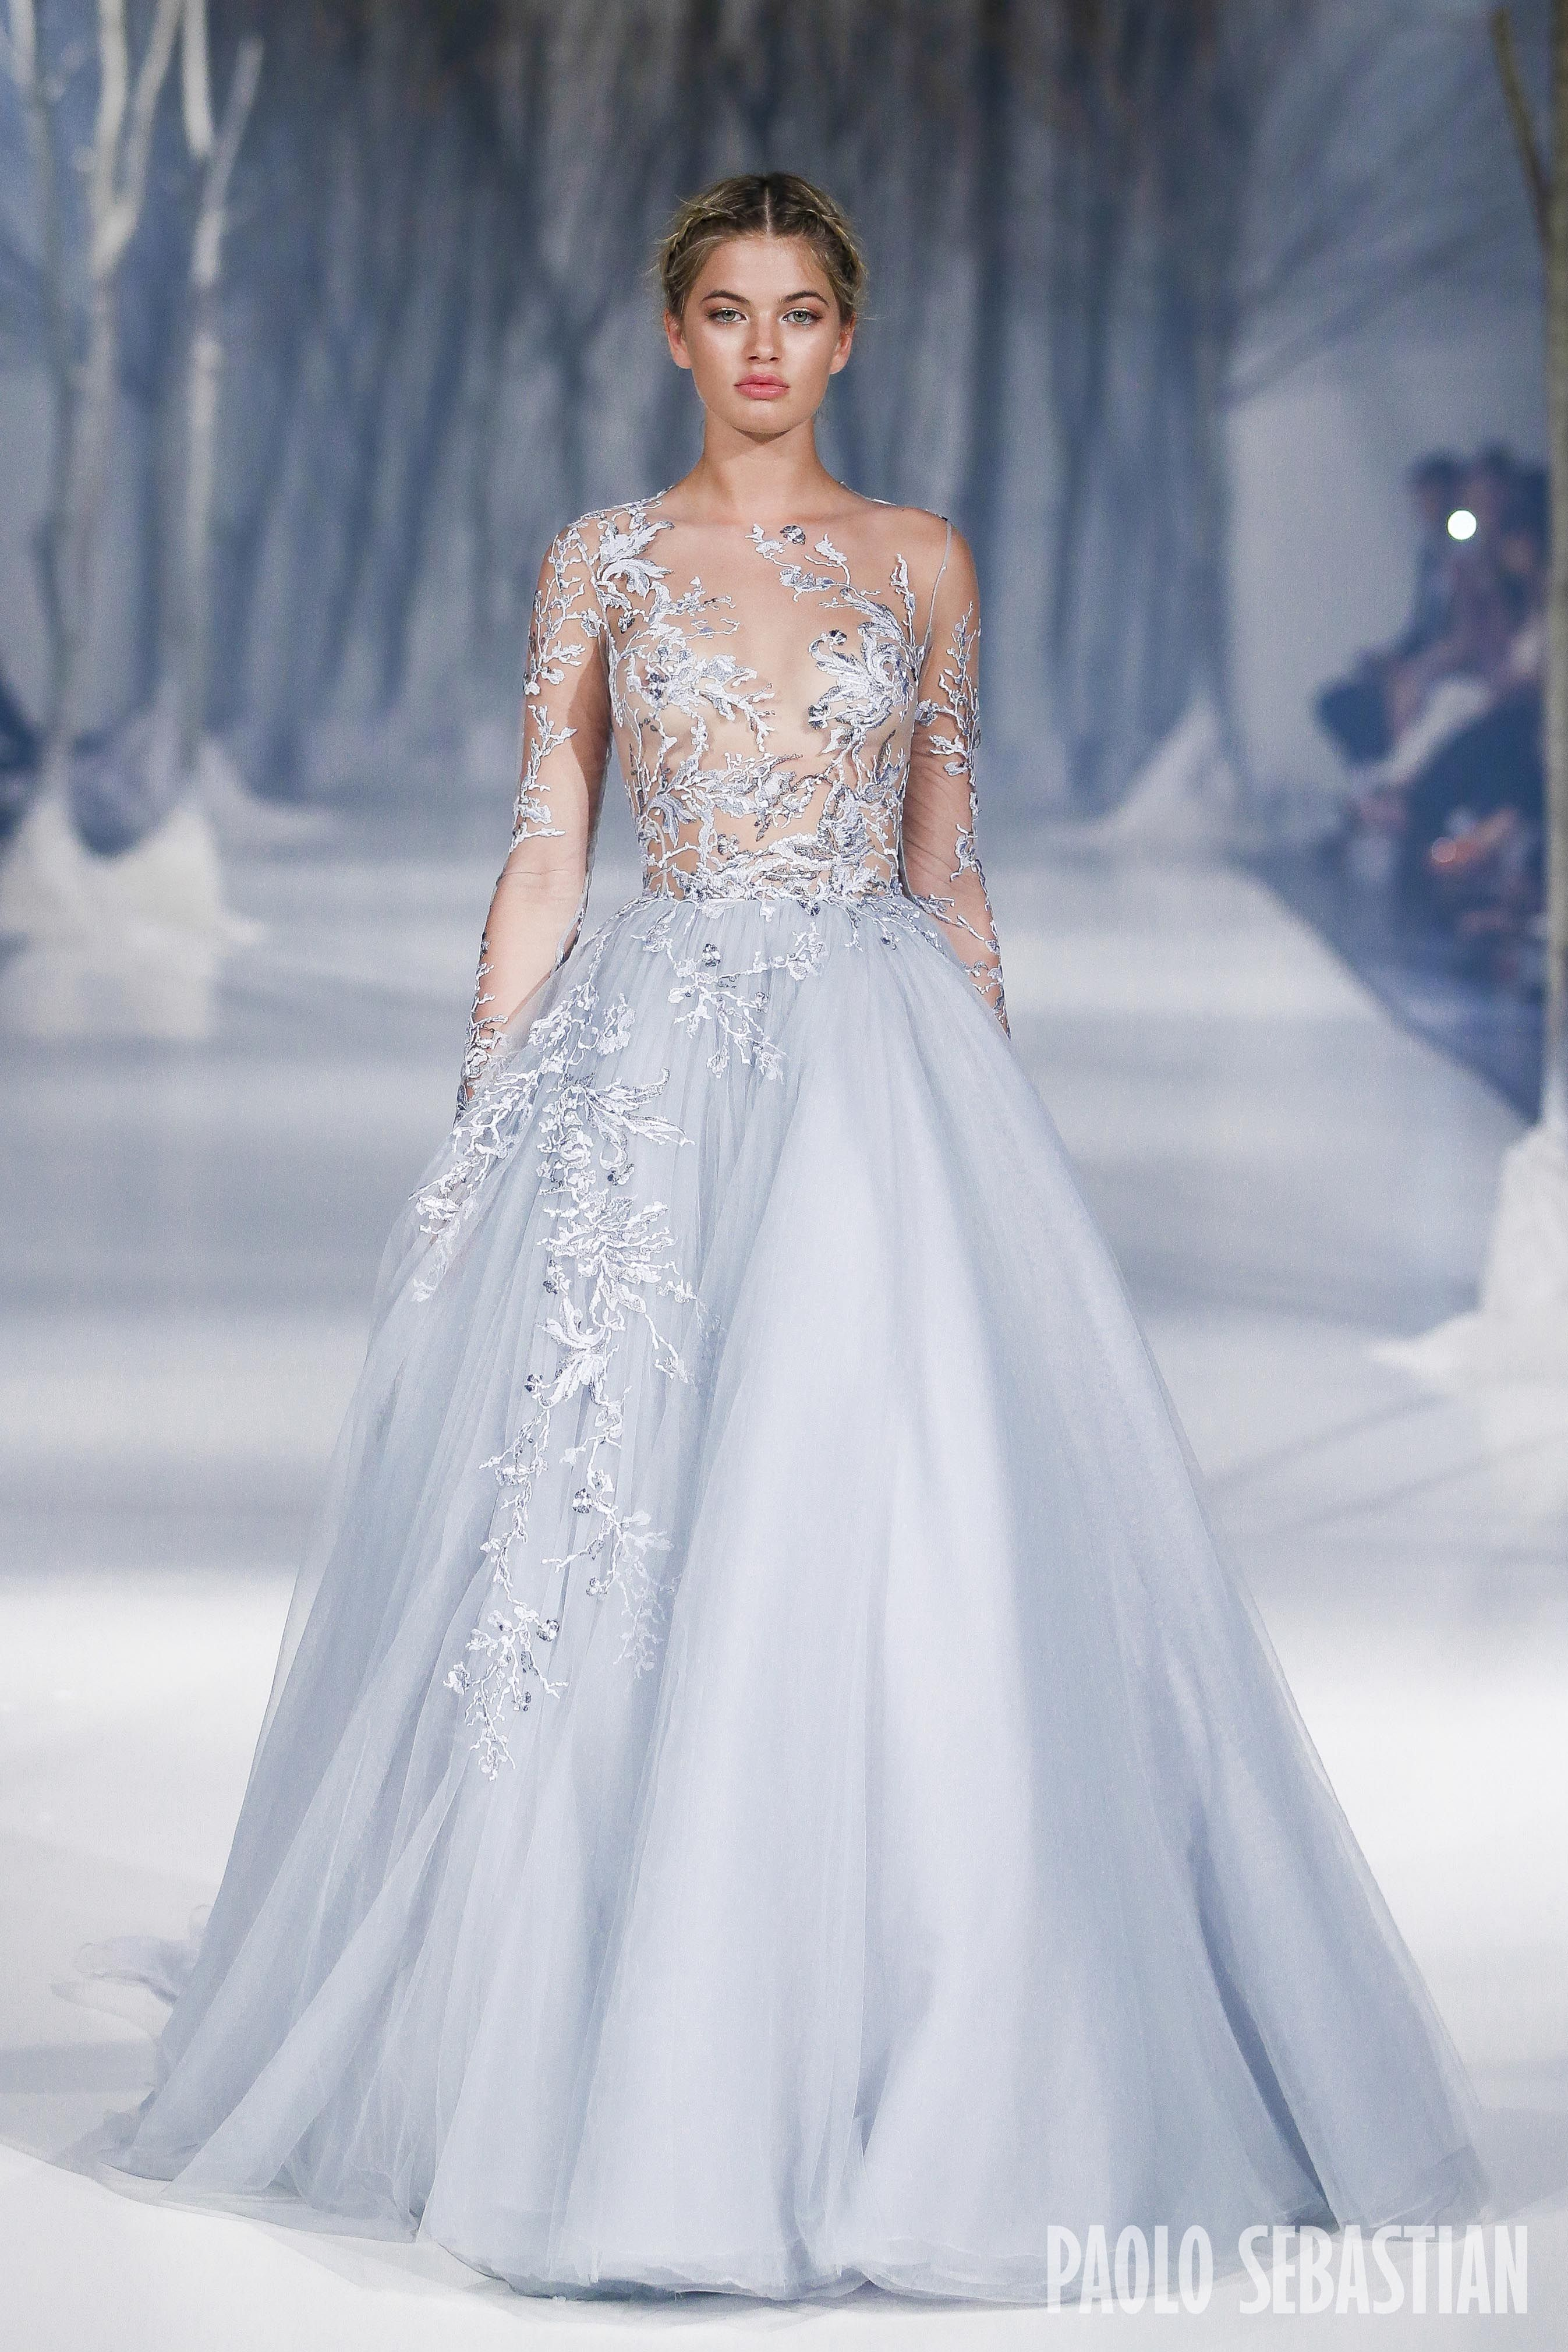 Paolo Sebastian 2016 A W Couture The Snow Maiden